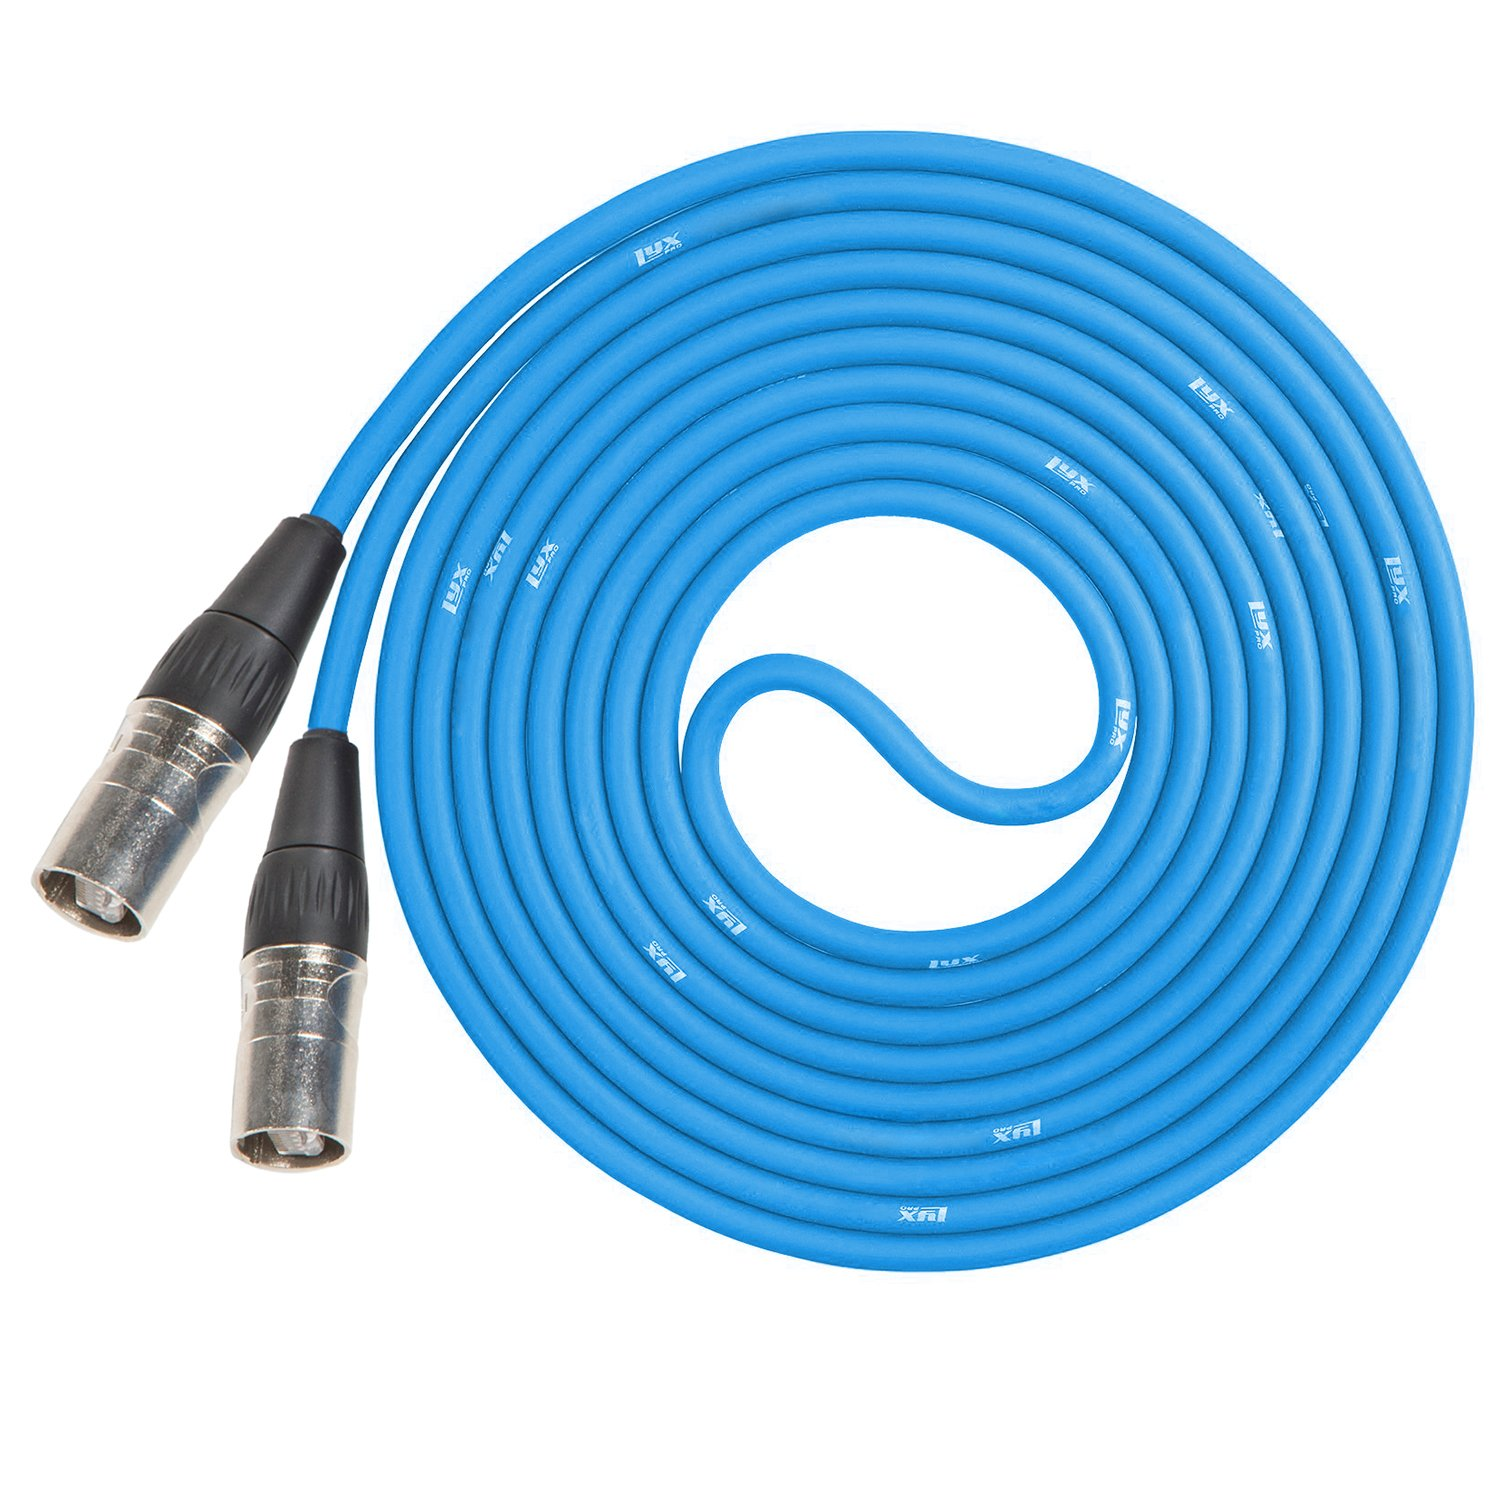 LyxPro CAT6 Shielded Ethercon RJ45 Cable - 100 Feet Blue